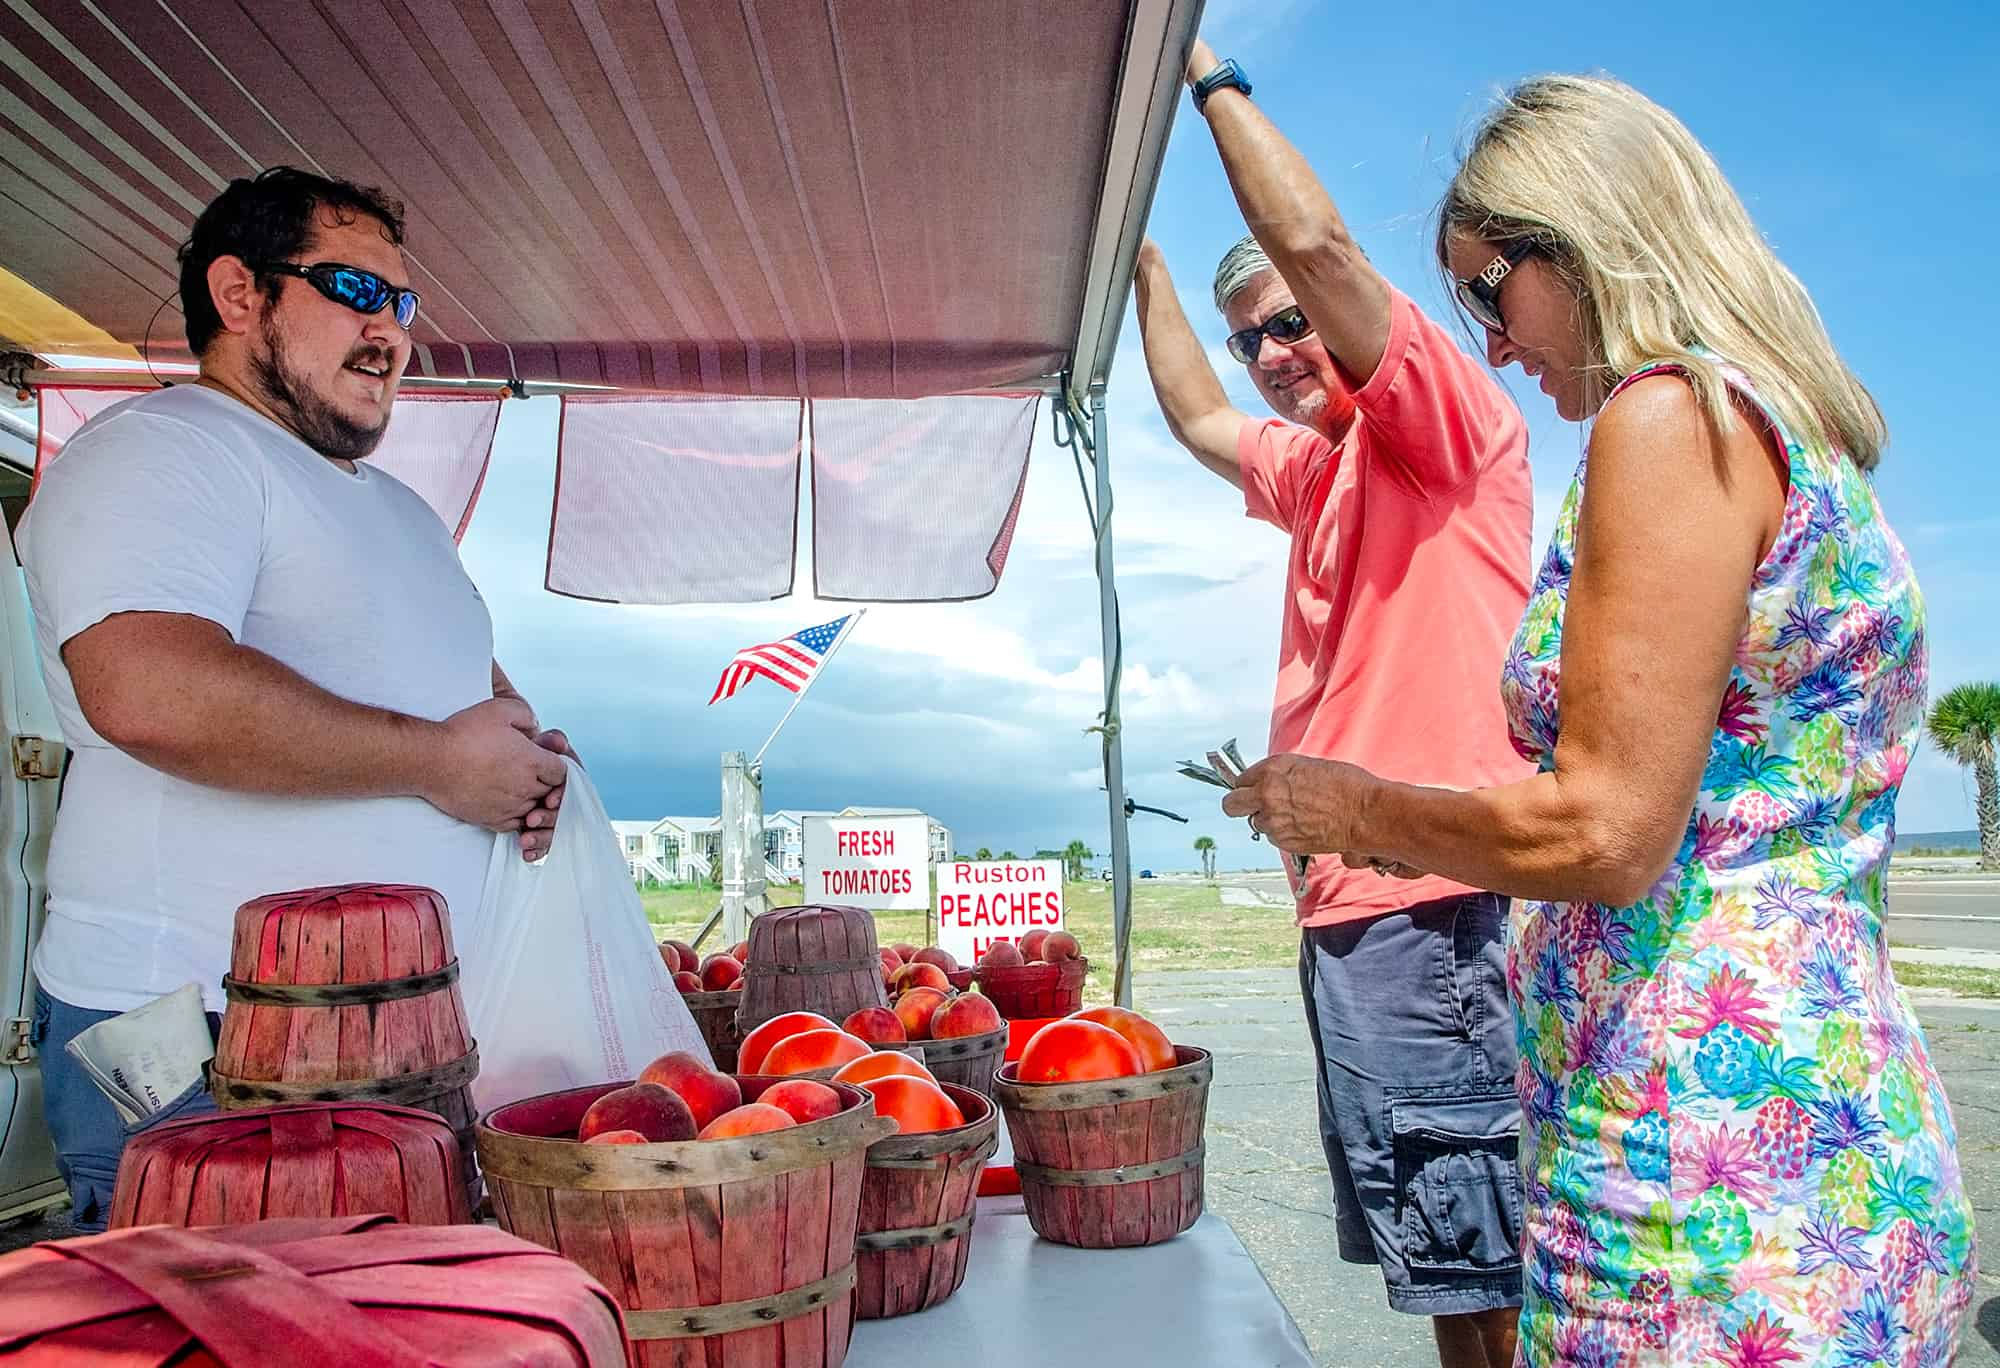 Fruit stand owner sells peaches to customers in Pass Christian Mississippi